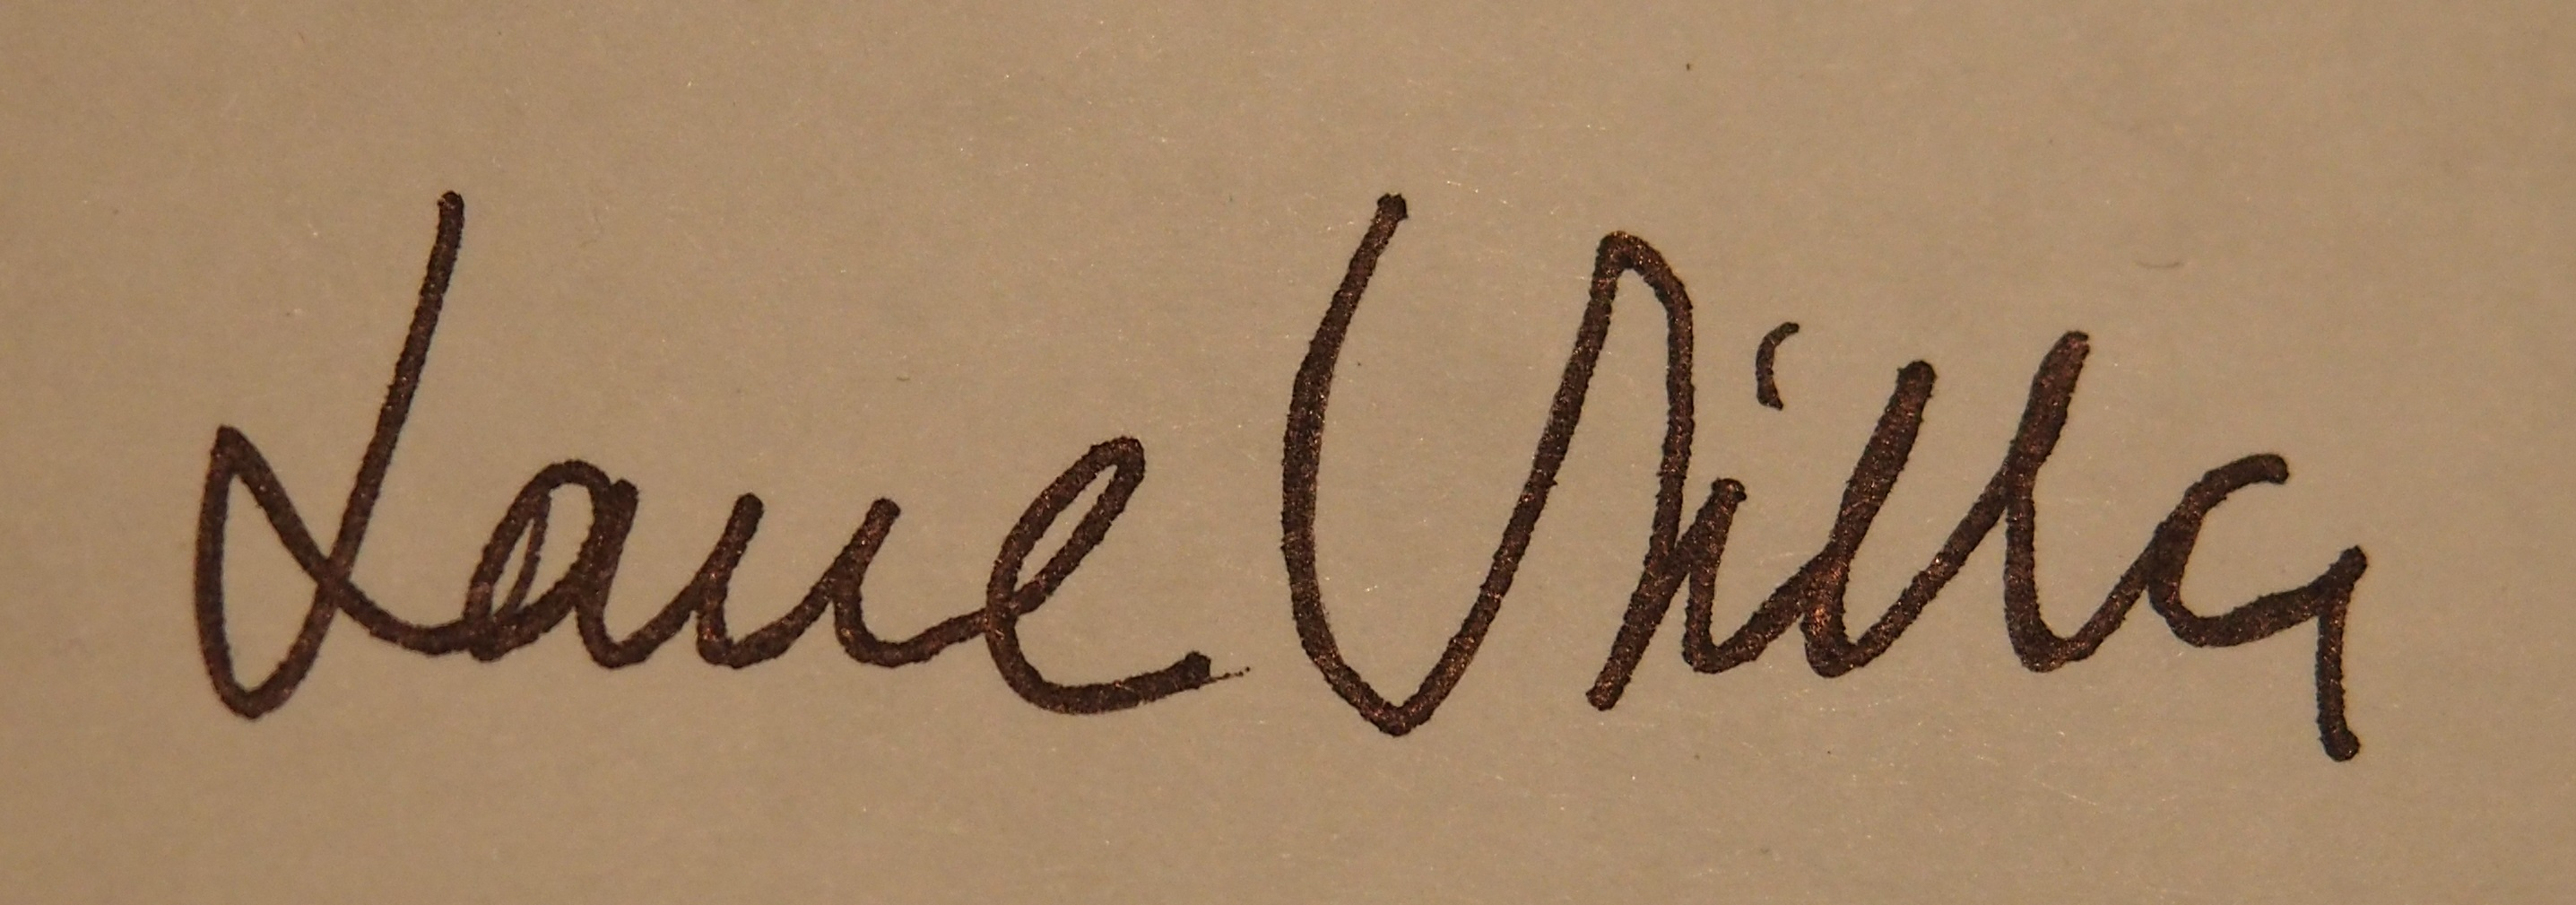 louise villa Signature